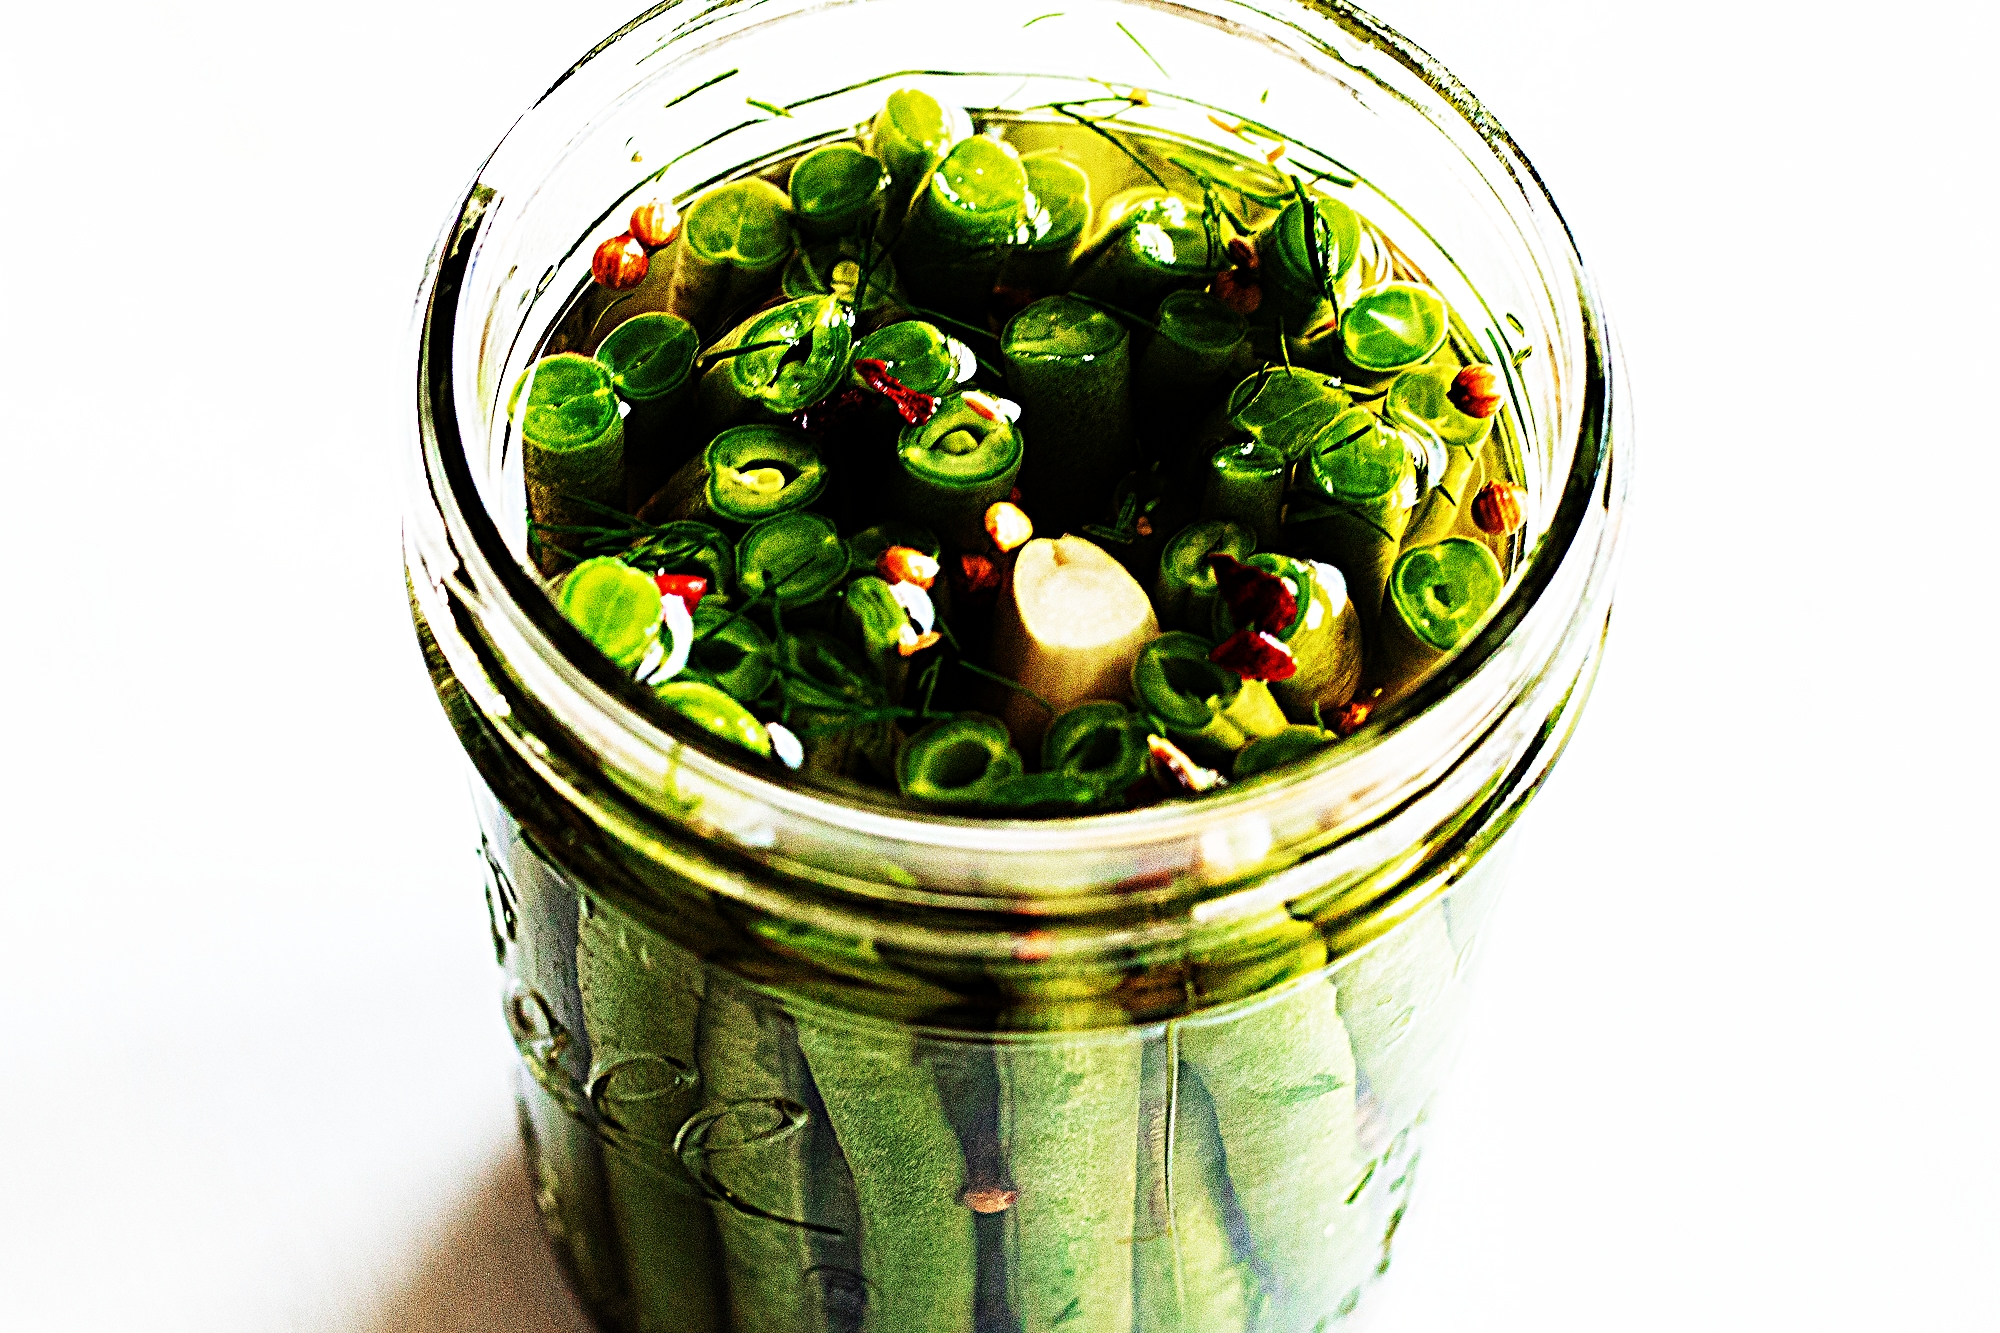 Stupid-Easy Recipe for Dilly Beans (#1 Top-Rated)